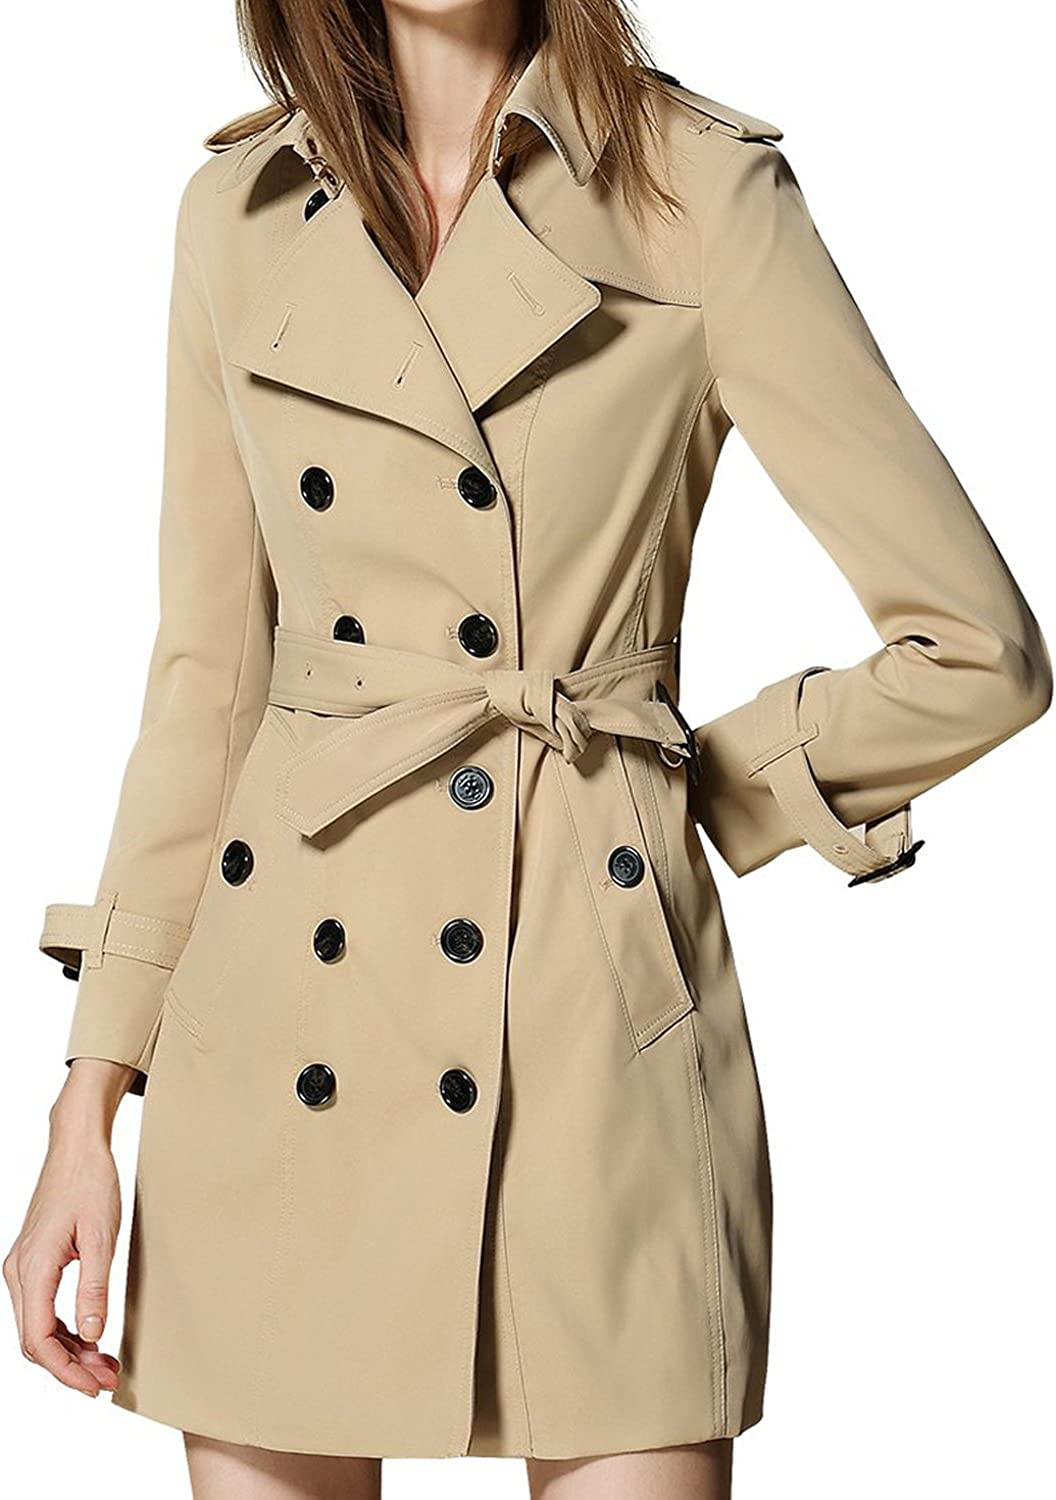 Women's Double breasted Trench Coat Belted Wind Coats